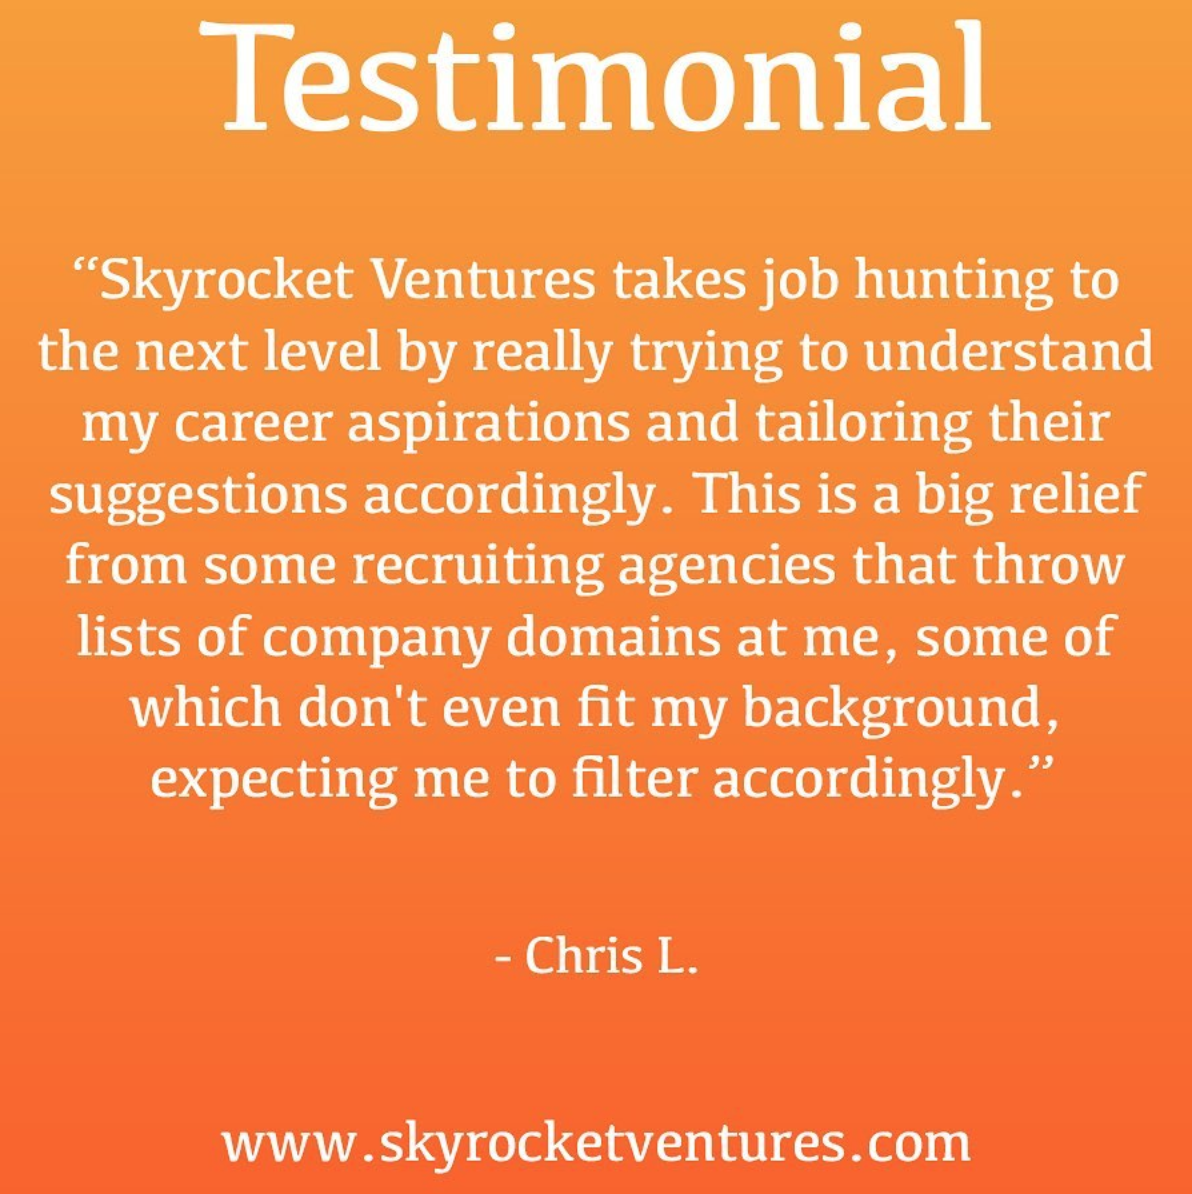 #CandidateTestimonial  Building and maintaining genuine relationships is extremely important to us. We will want to get to know you and understand both your short-term and long-term goals, so that we can accelerate your career advancement!  For more testimonials, head over to our website  www.skyrocketventures.com   We encourage you to check out Skyrocket Ventures on Social Media:    Facebook       Instagram       LinkedIn       Medium       Tumblr    To get a sense of what types of companies Skyrocket Ventures works with and what types of jobs we help them recruit for, we encourage you to check our job posting sites:    Monster       Dice       LinkedIn